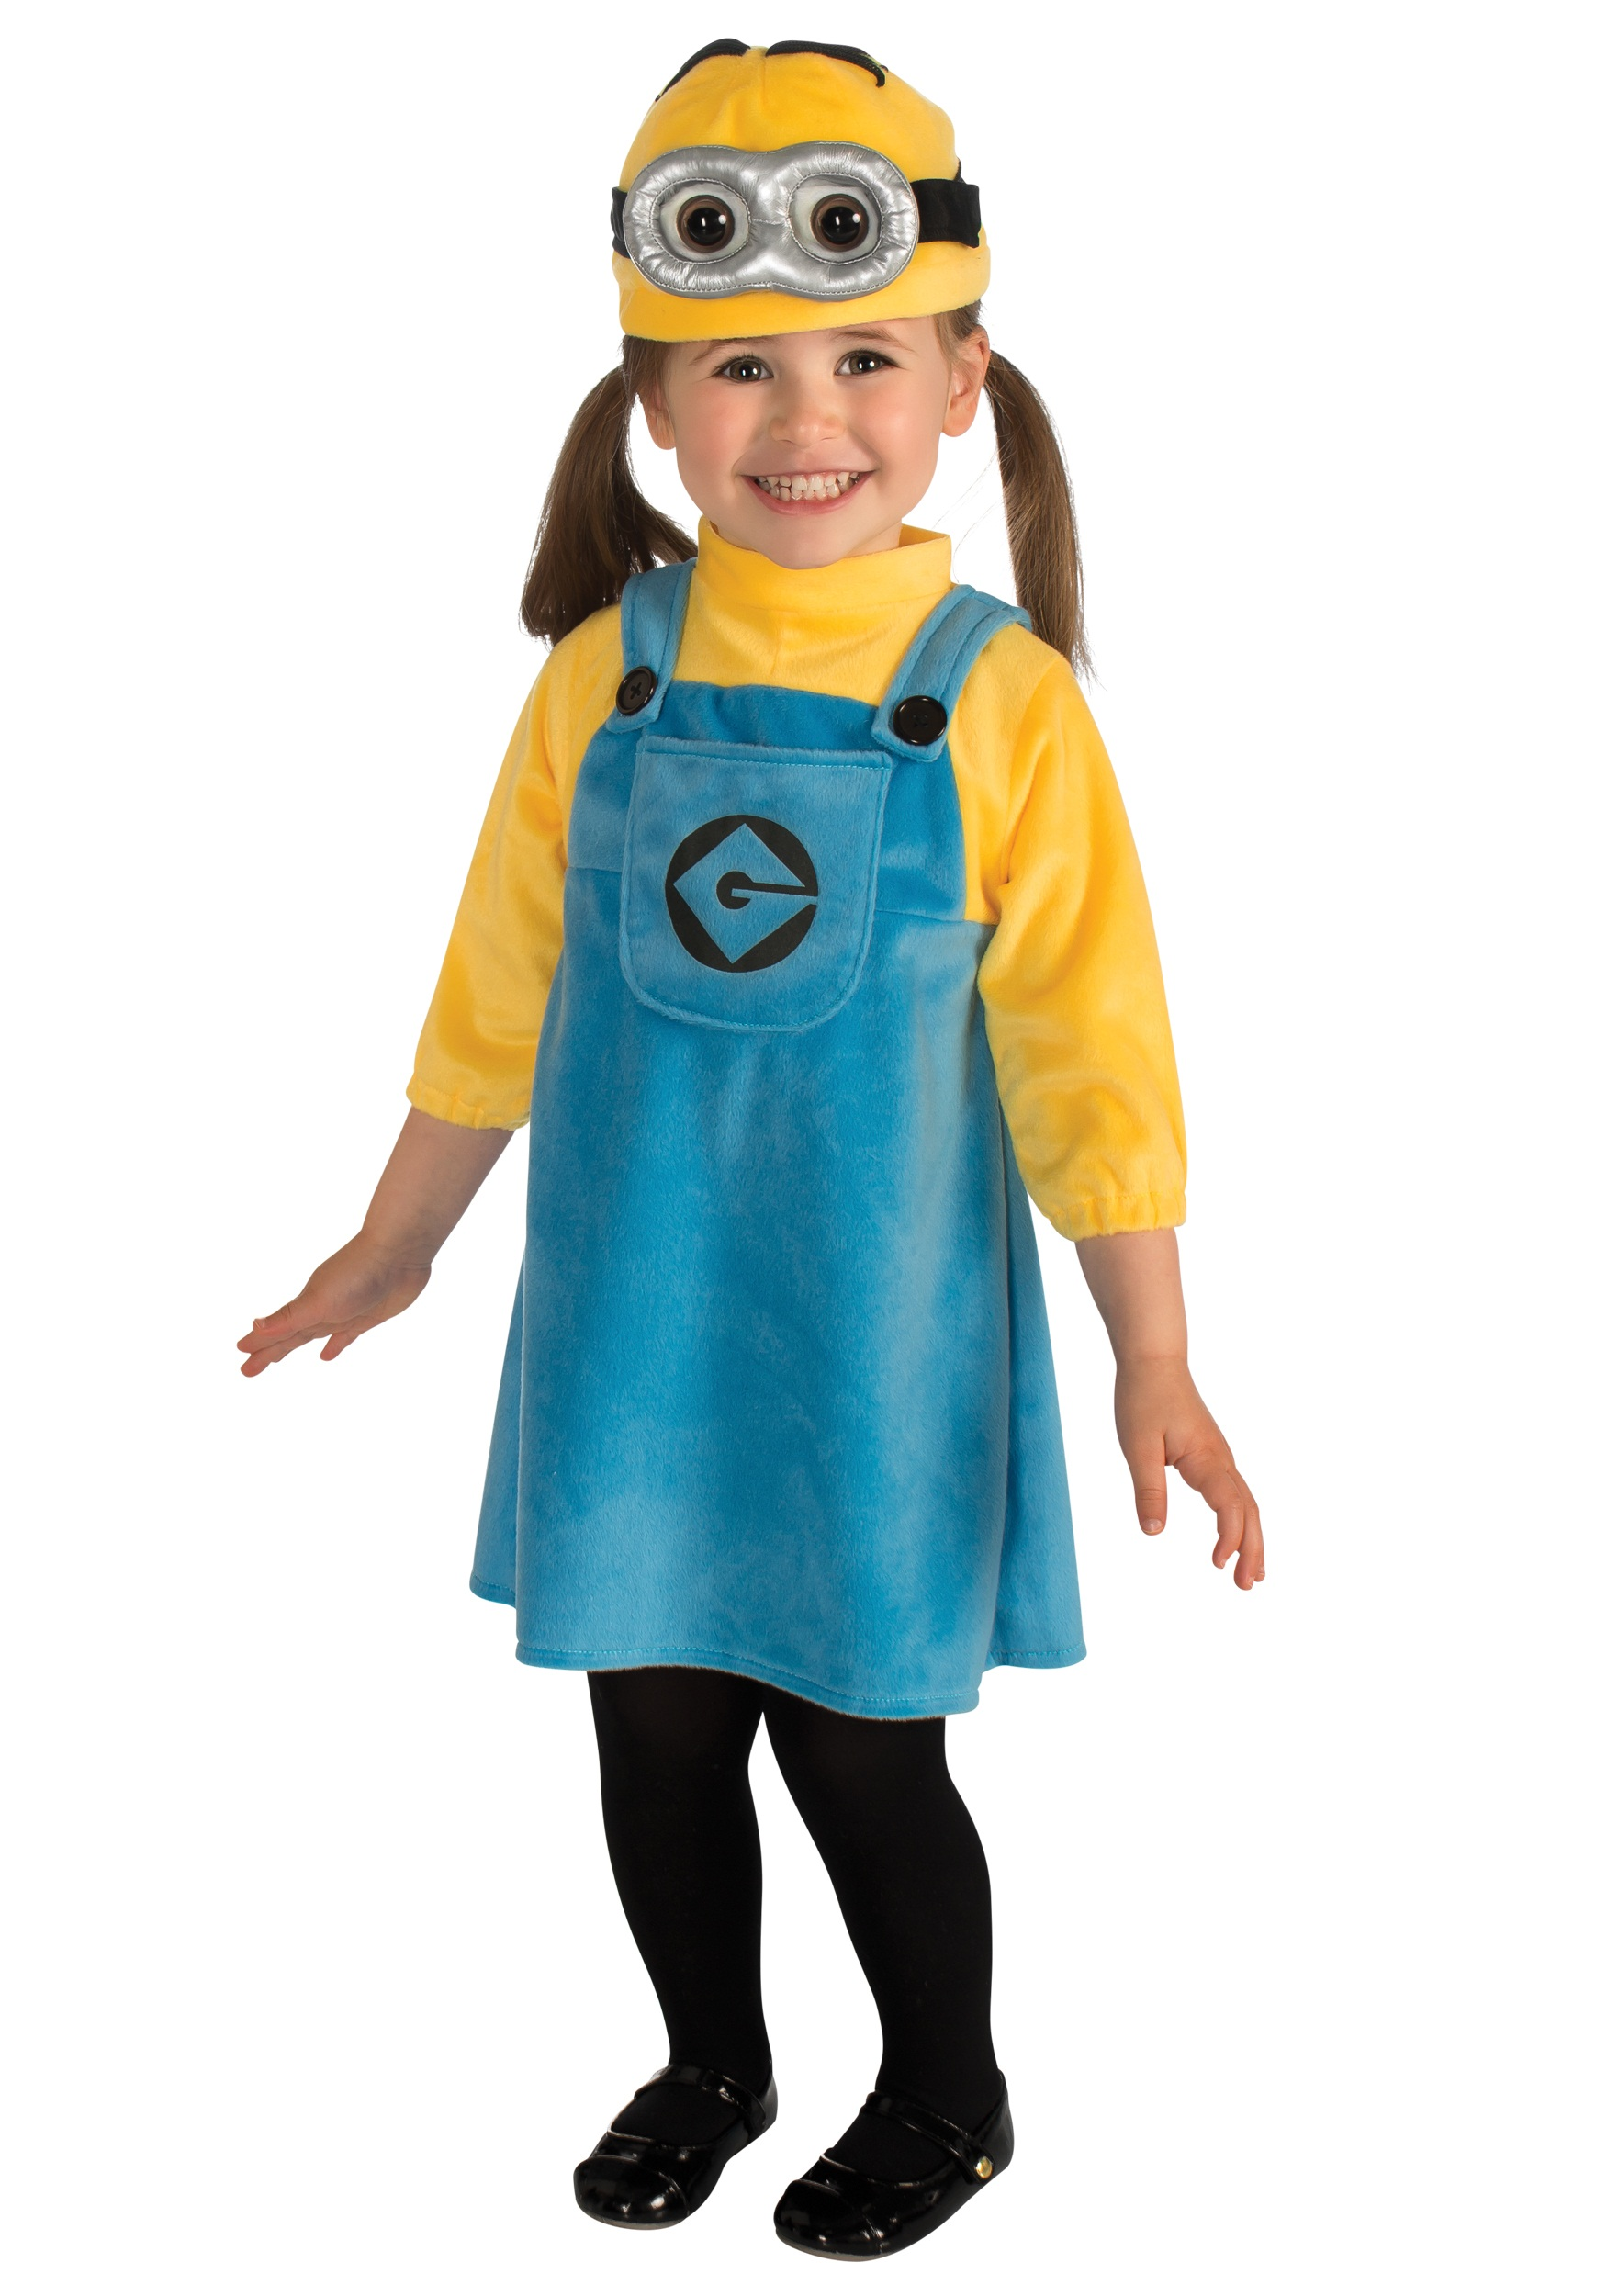 Minion Costume for Toddlers  sc 1 st  Fun.com & Toddler Girlu0027s Minion Costume